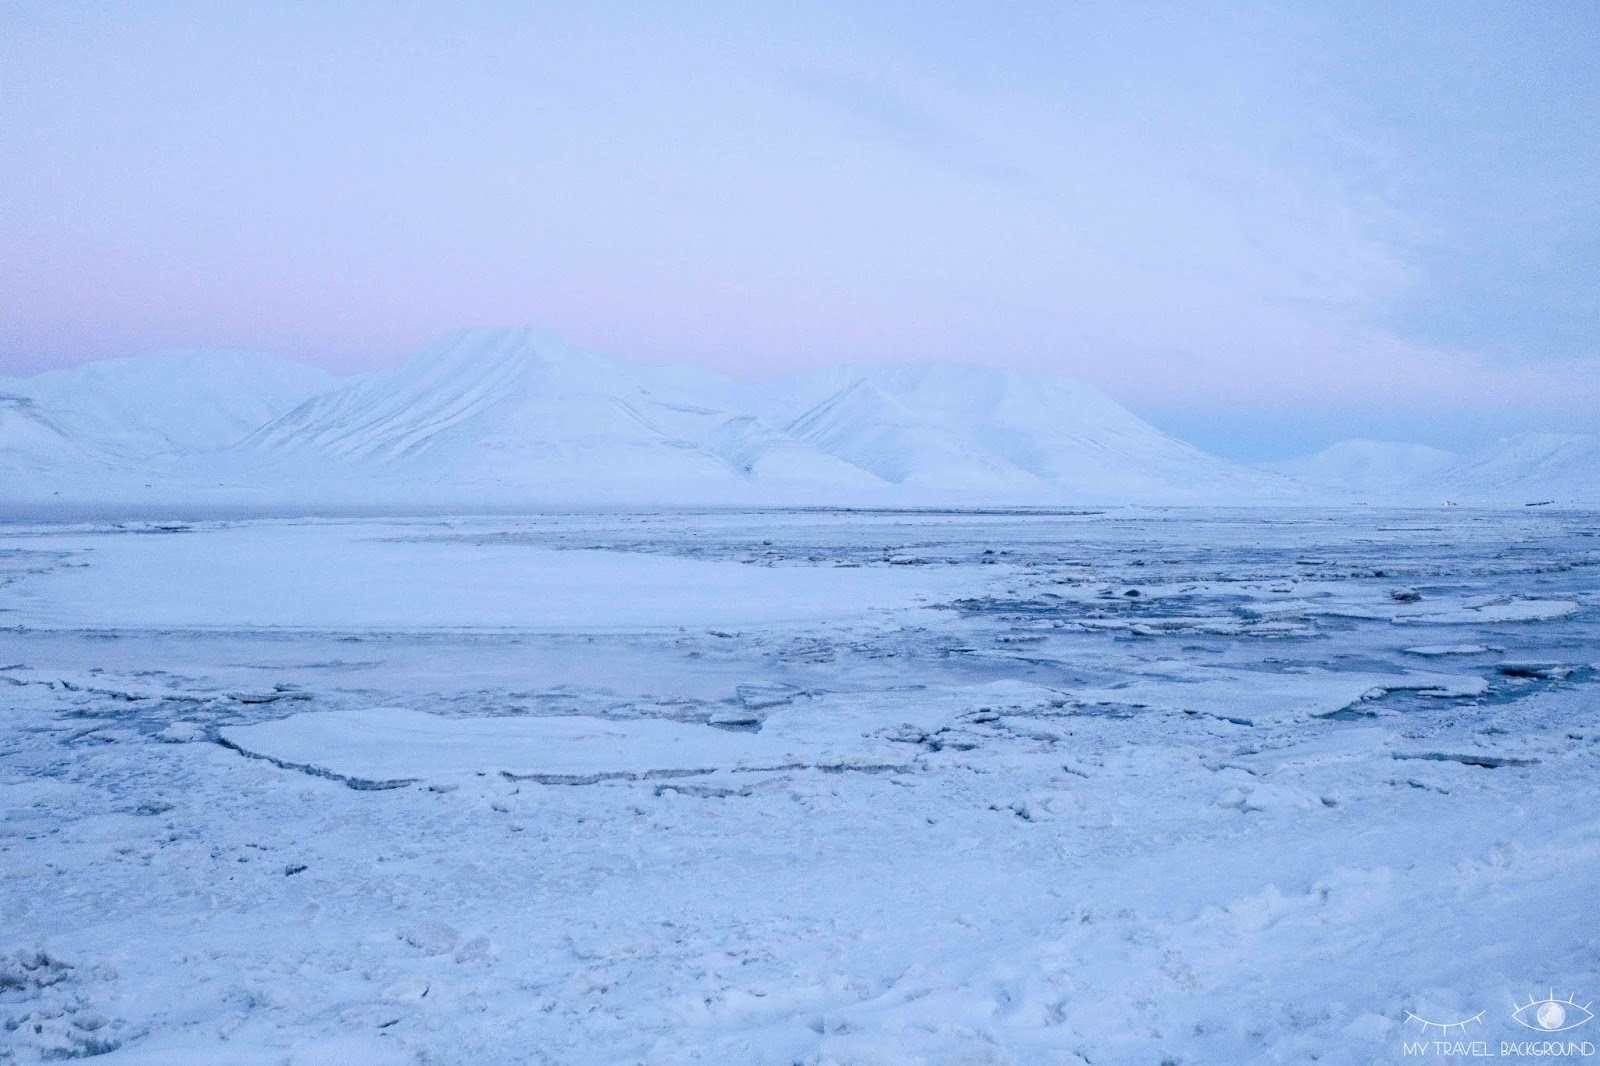 My Travel Background : cartes postales du Svalbard - Longyearbyen